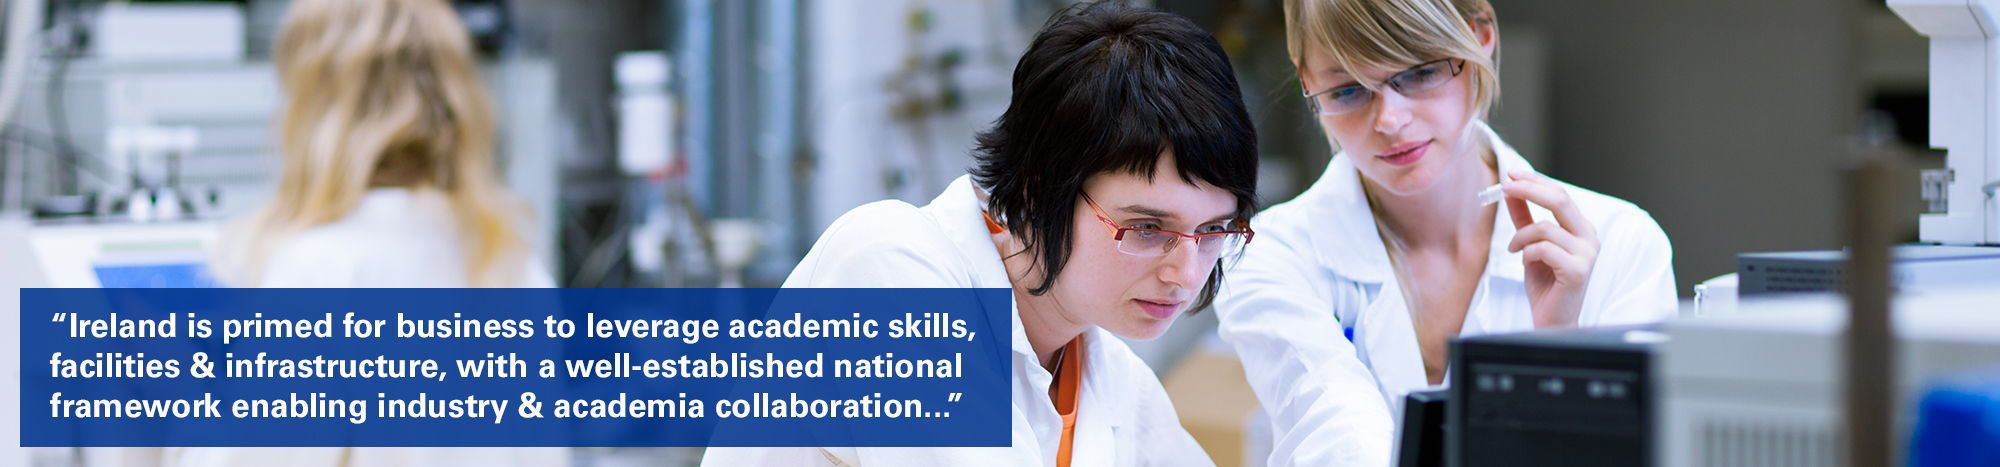 """Two scientists in lab with text overlaid """"Ireland is primed for business to leverage academic skills, facilities and infrastructure, with a well-established national framework enabling industry and academia collaboration, spearheaded by the SFI research centres."""""""